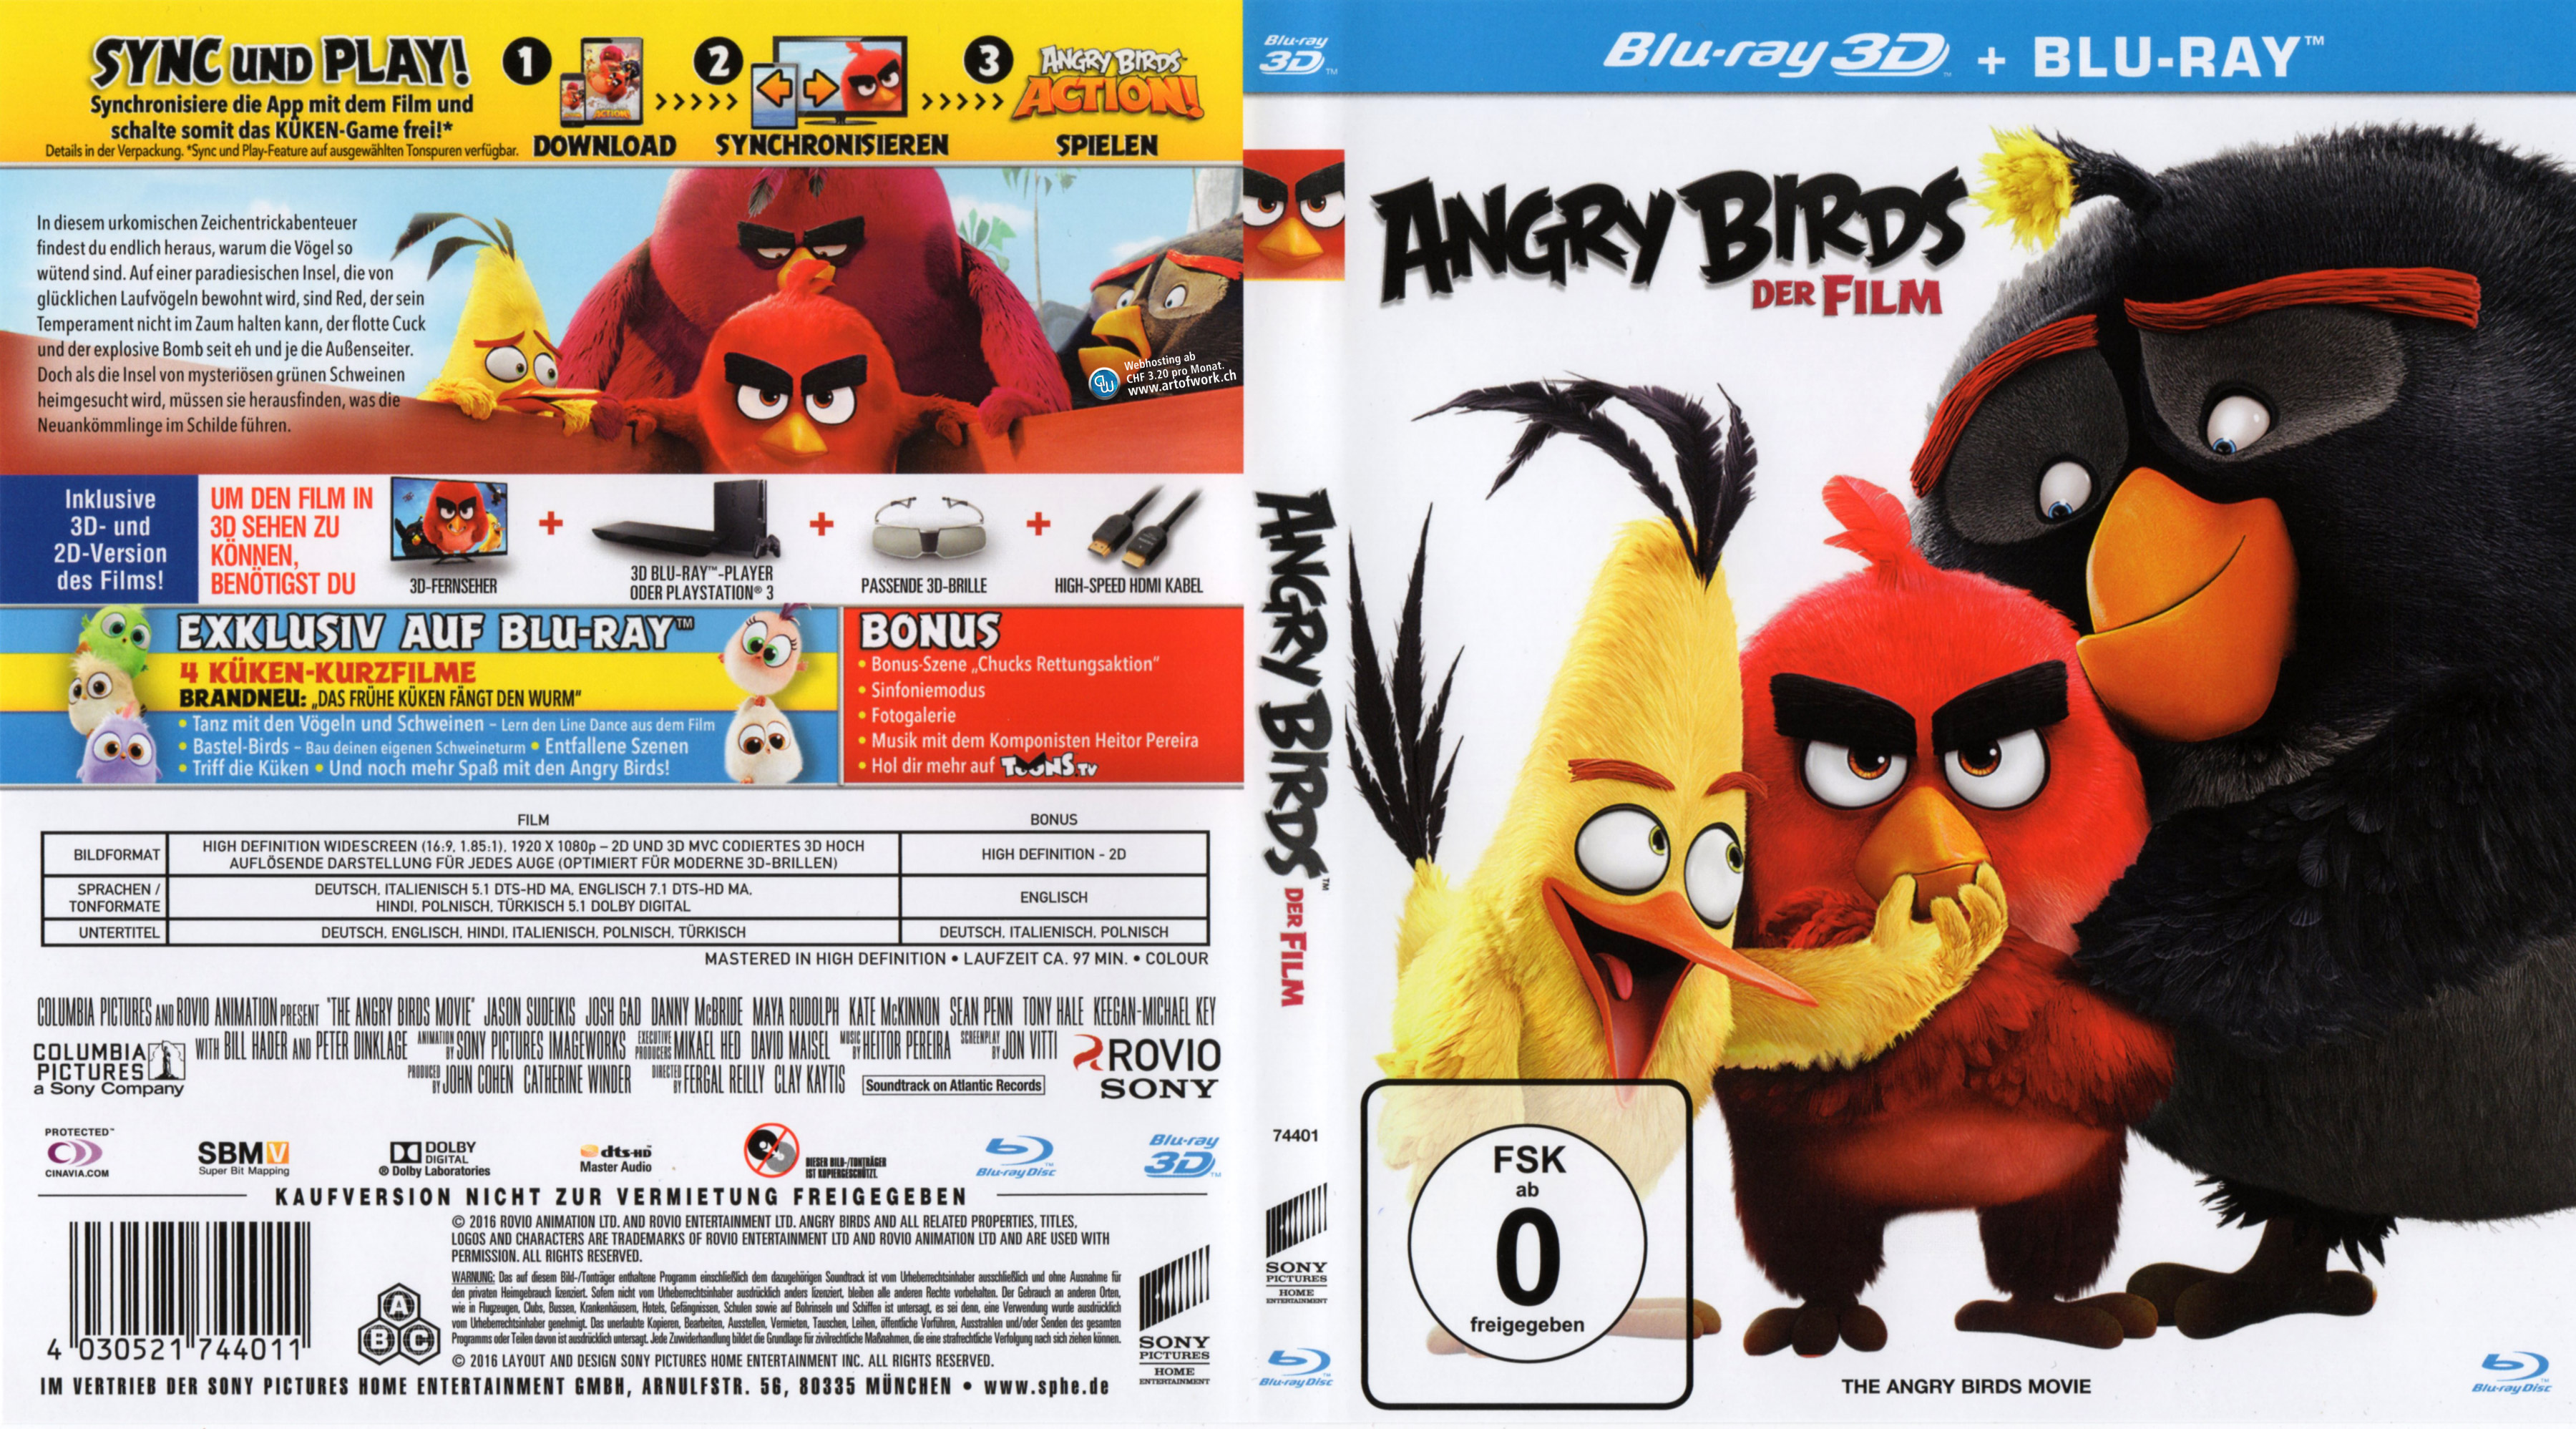 angry birds der film 3d german blu ray cover german dvd covers